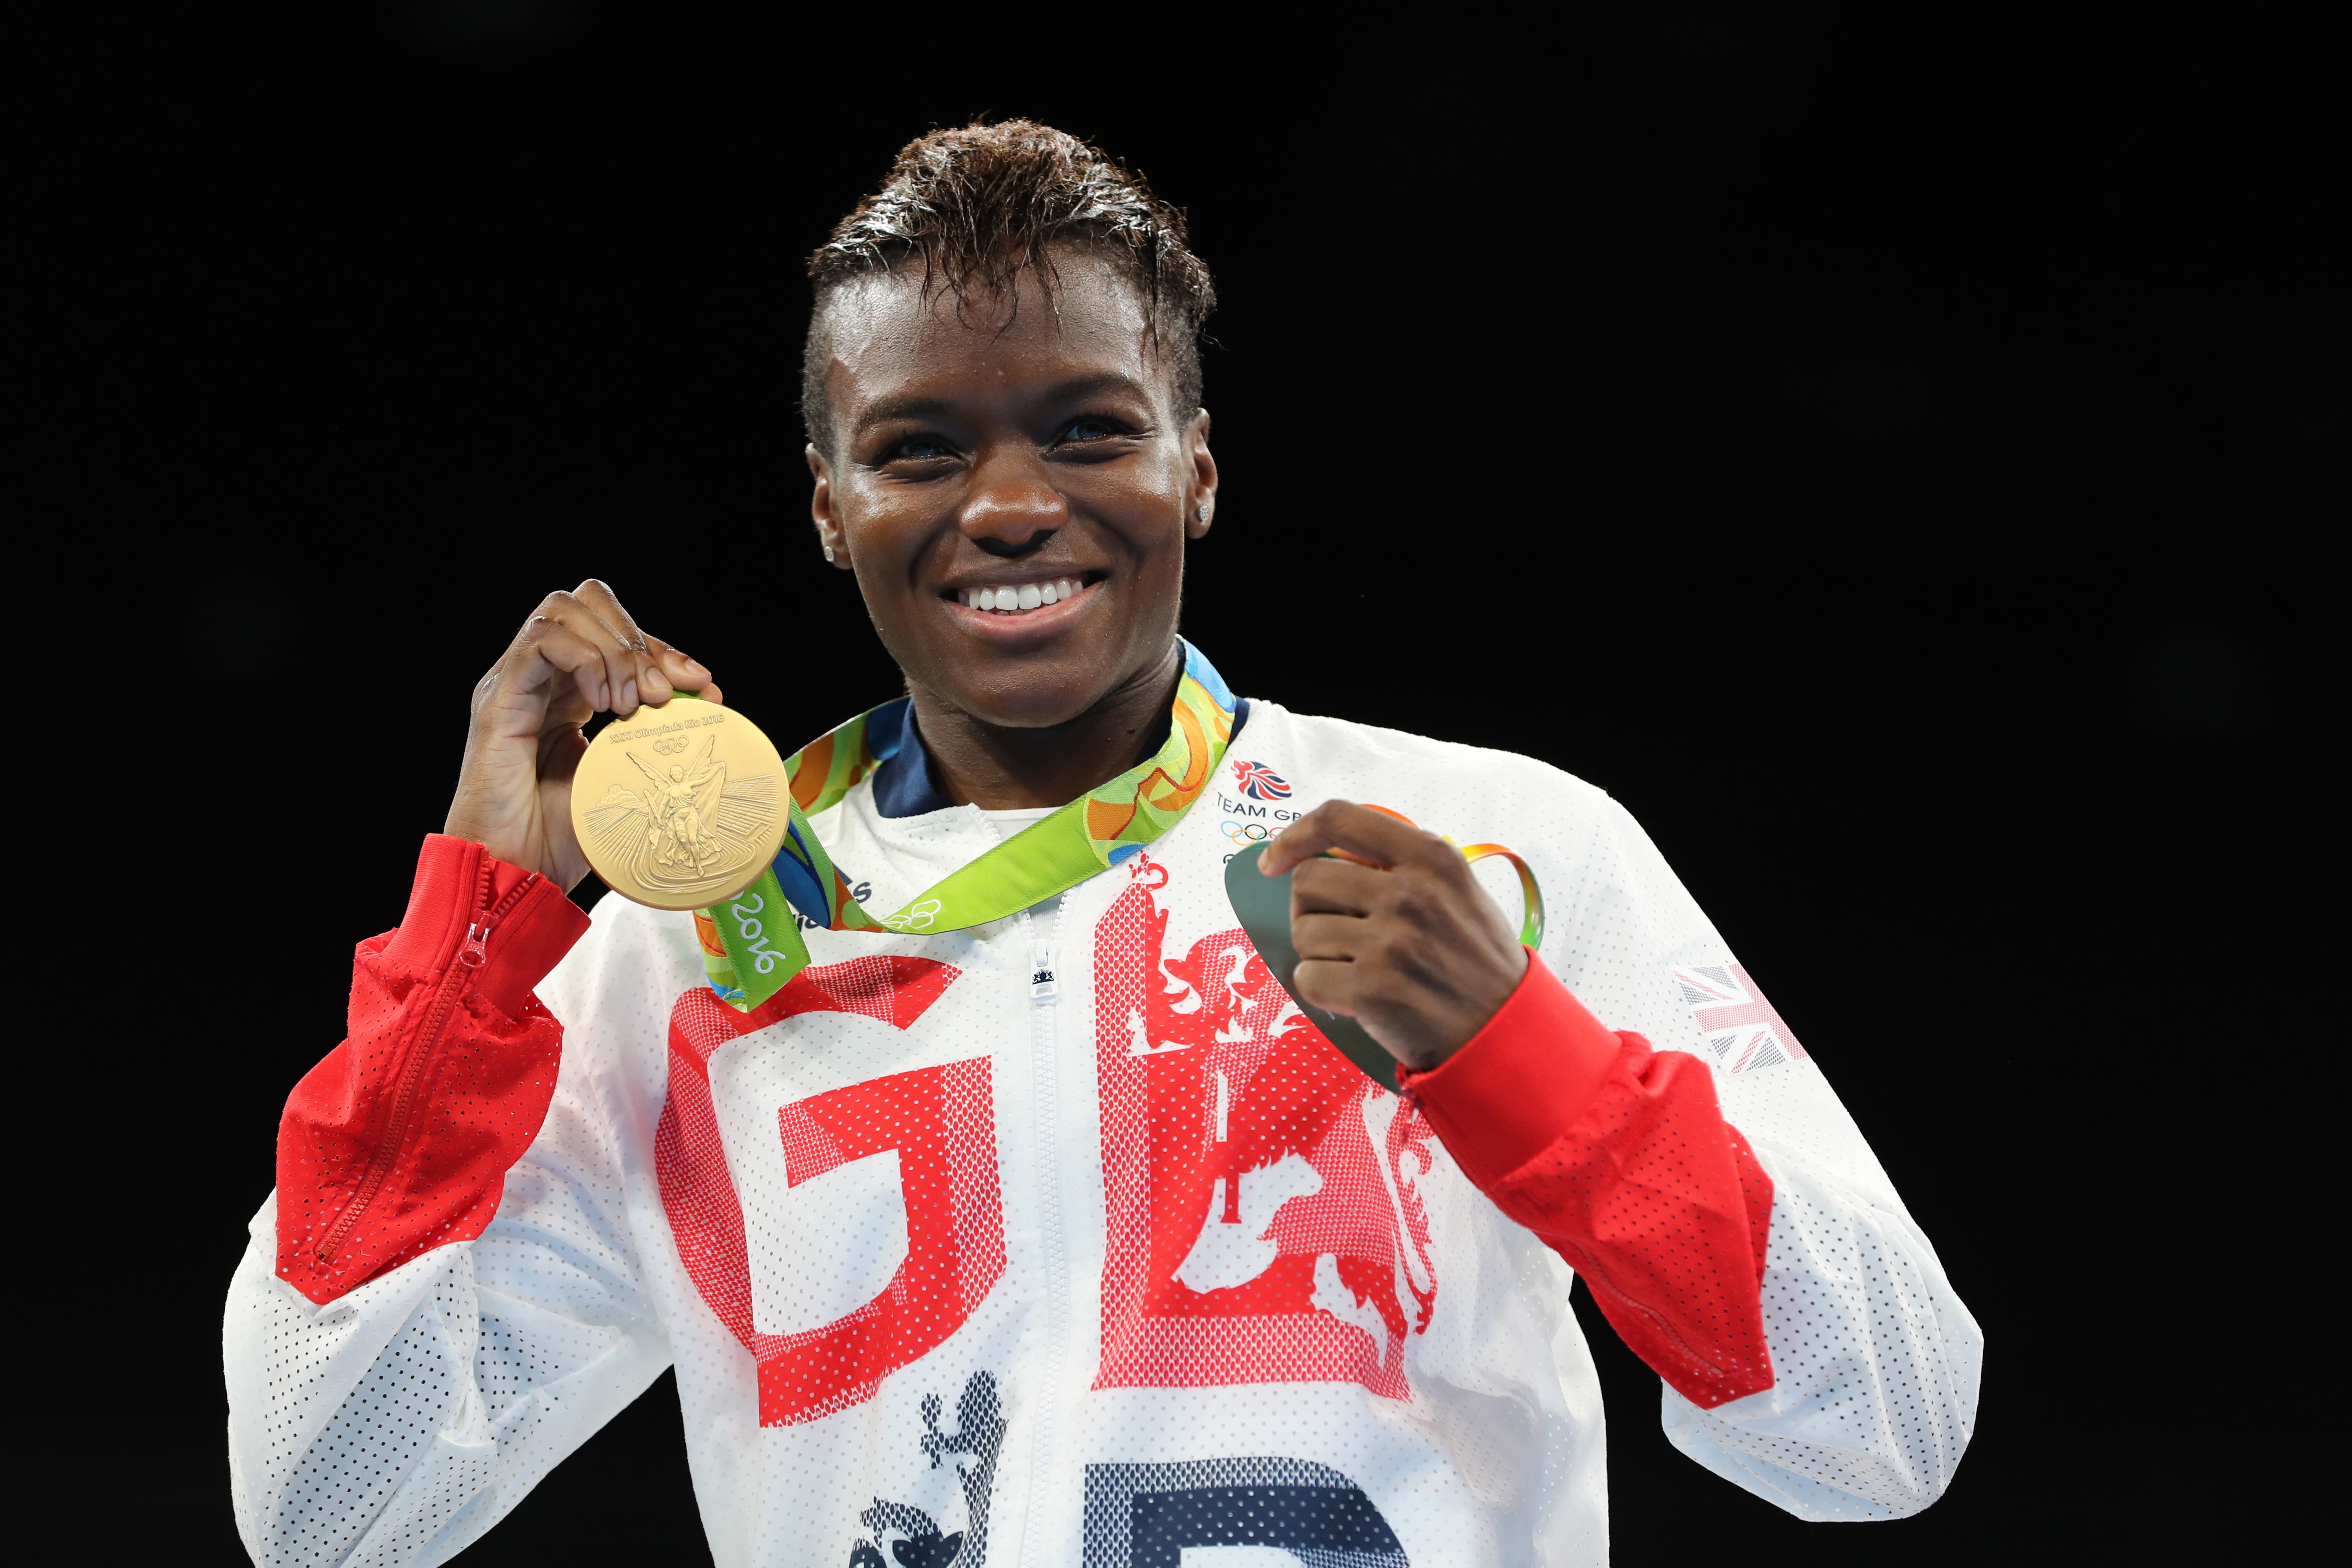 Great Britain's Nicola Adams with her gold medal at Rio 2016.